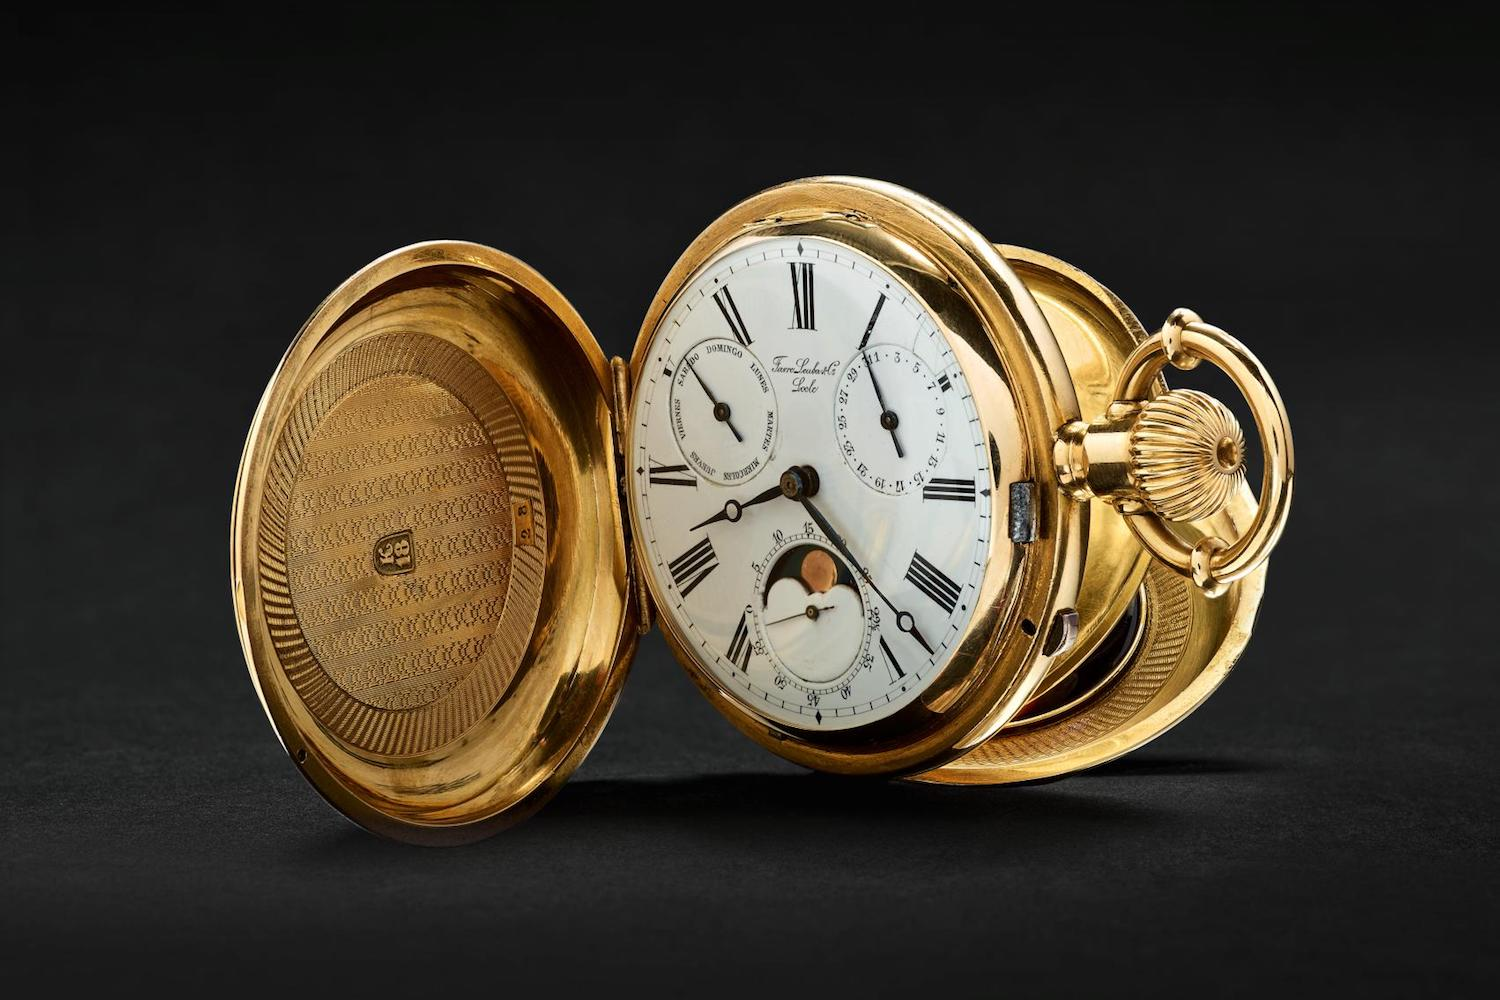 Favre Leuba historical pocket watch